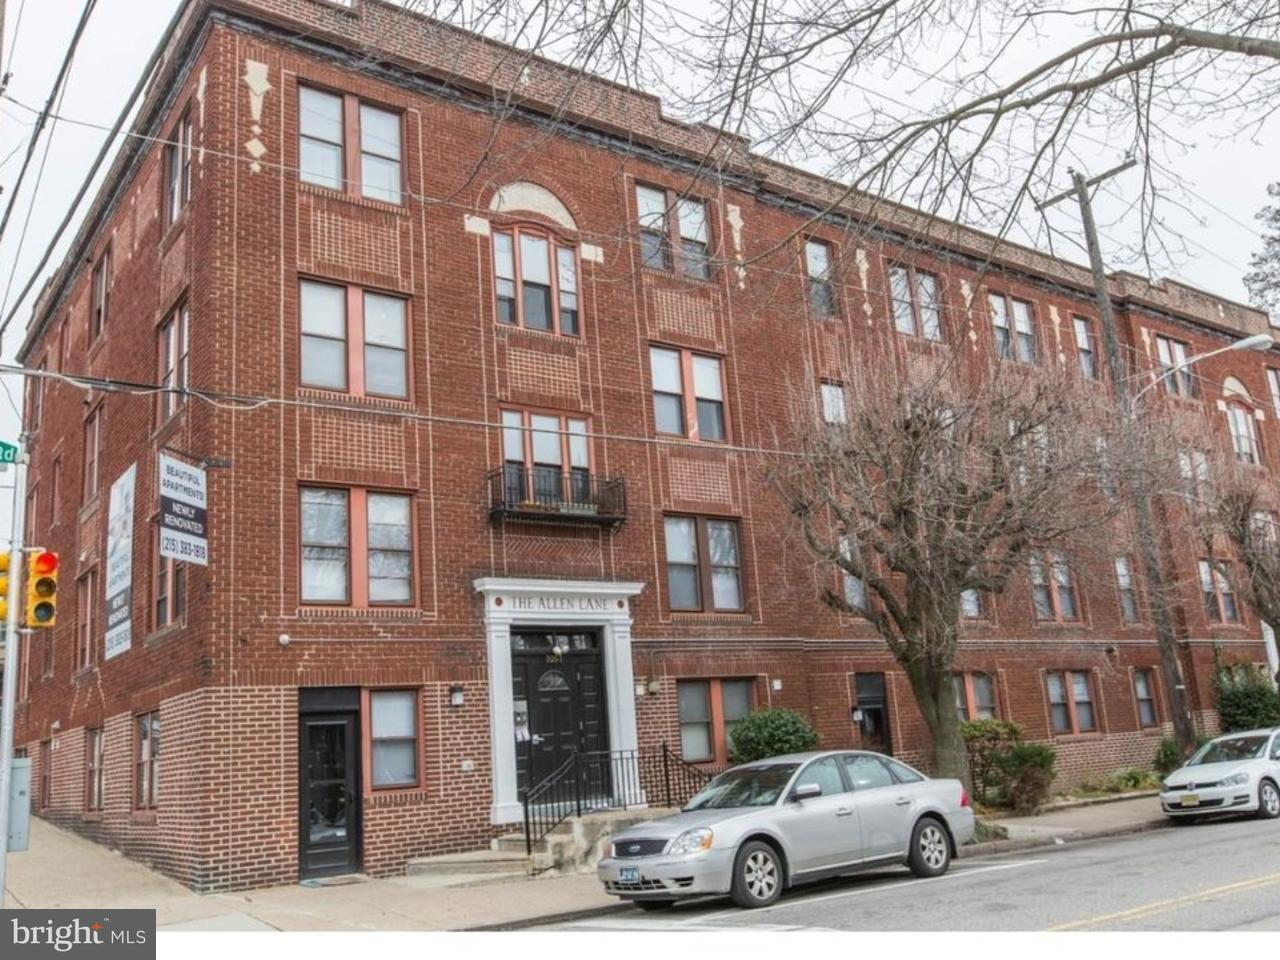 240 W Mount Pleasant Philadelphia, PA 19119